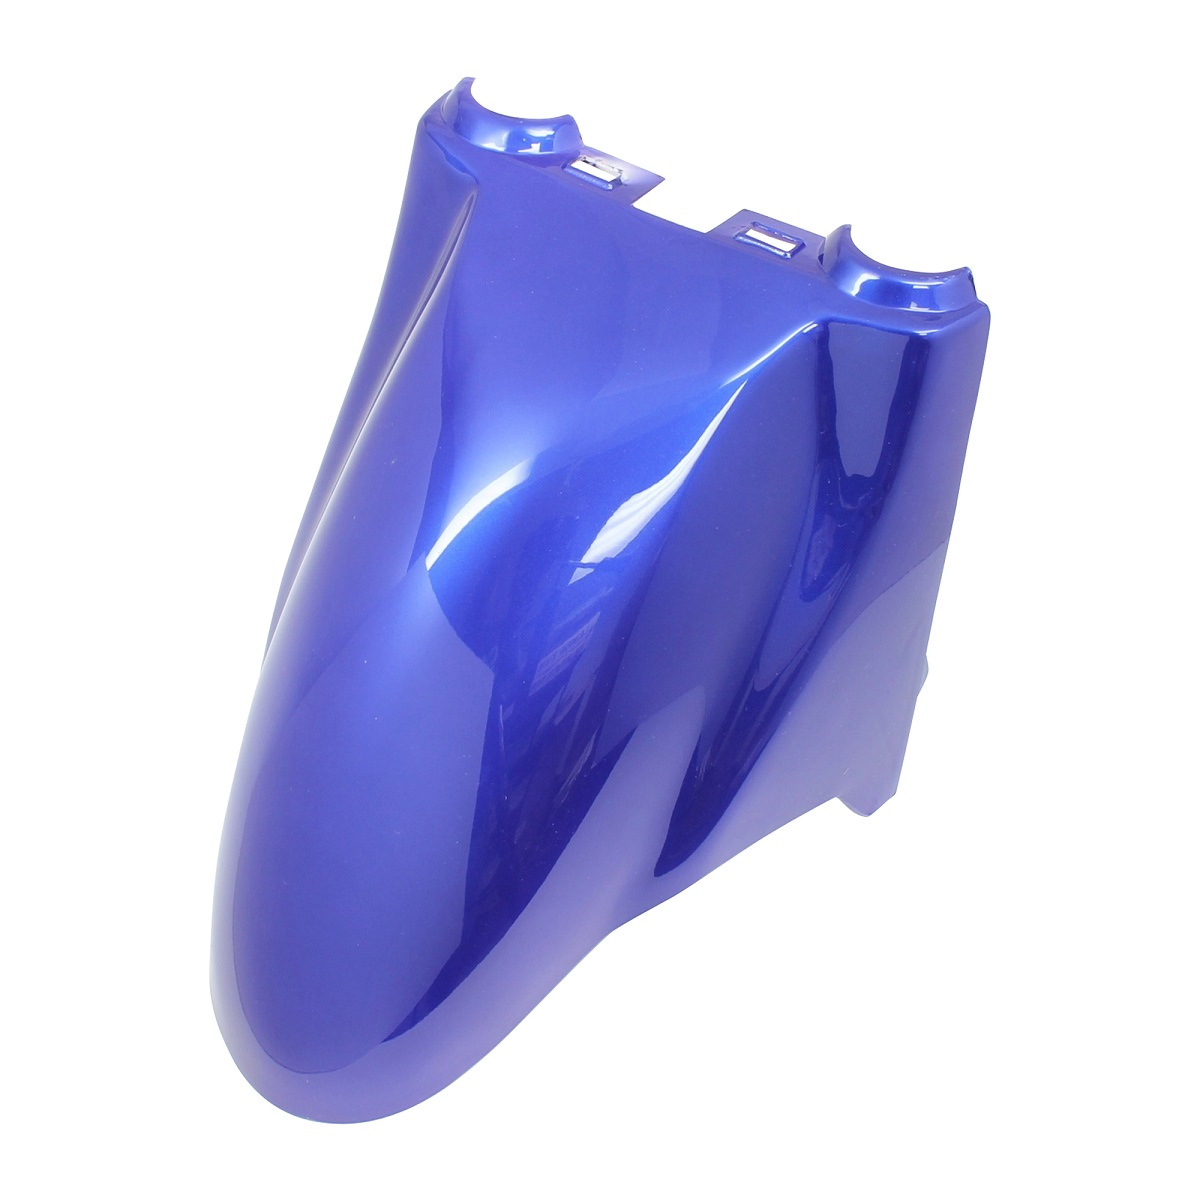 Details about Chinese Scooter Body Parts Blue ABS Front Fender Jonway Tao  Tao GY6 50cc QT-2